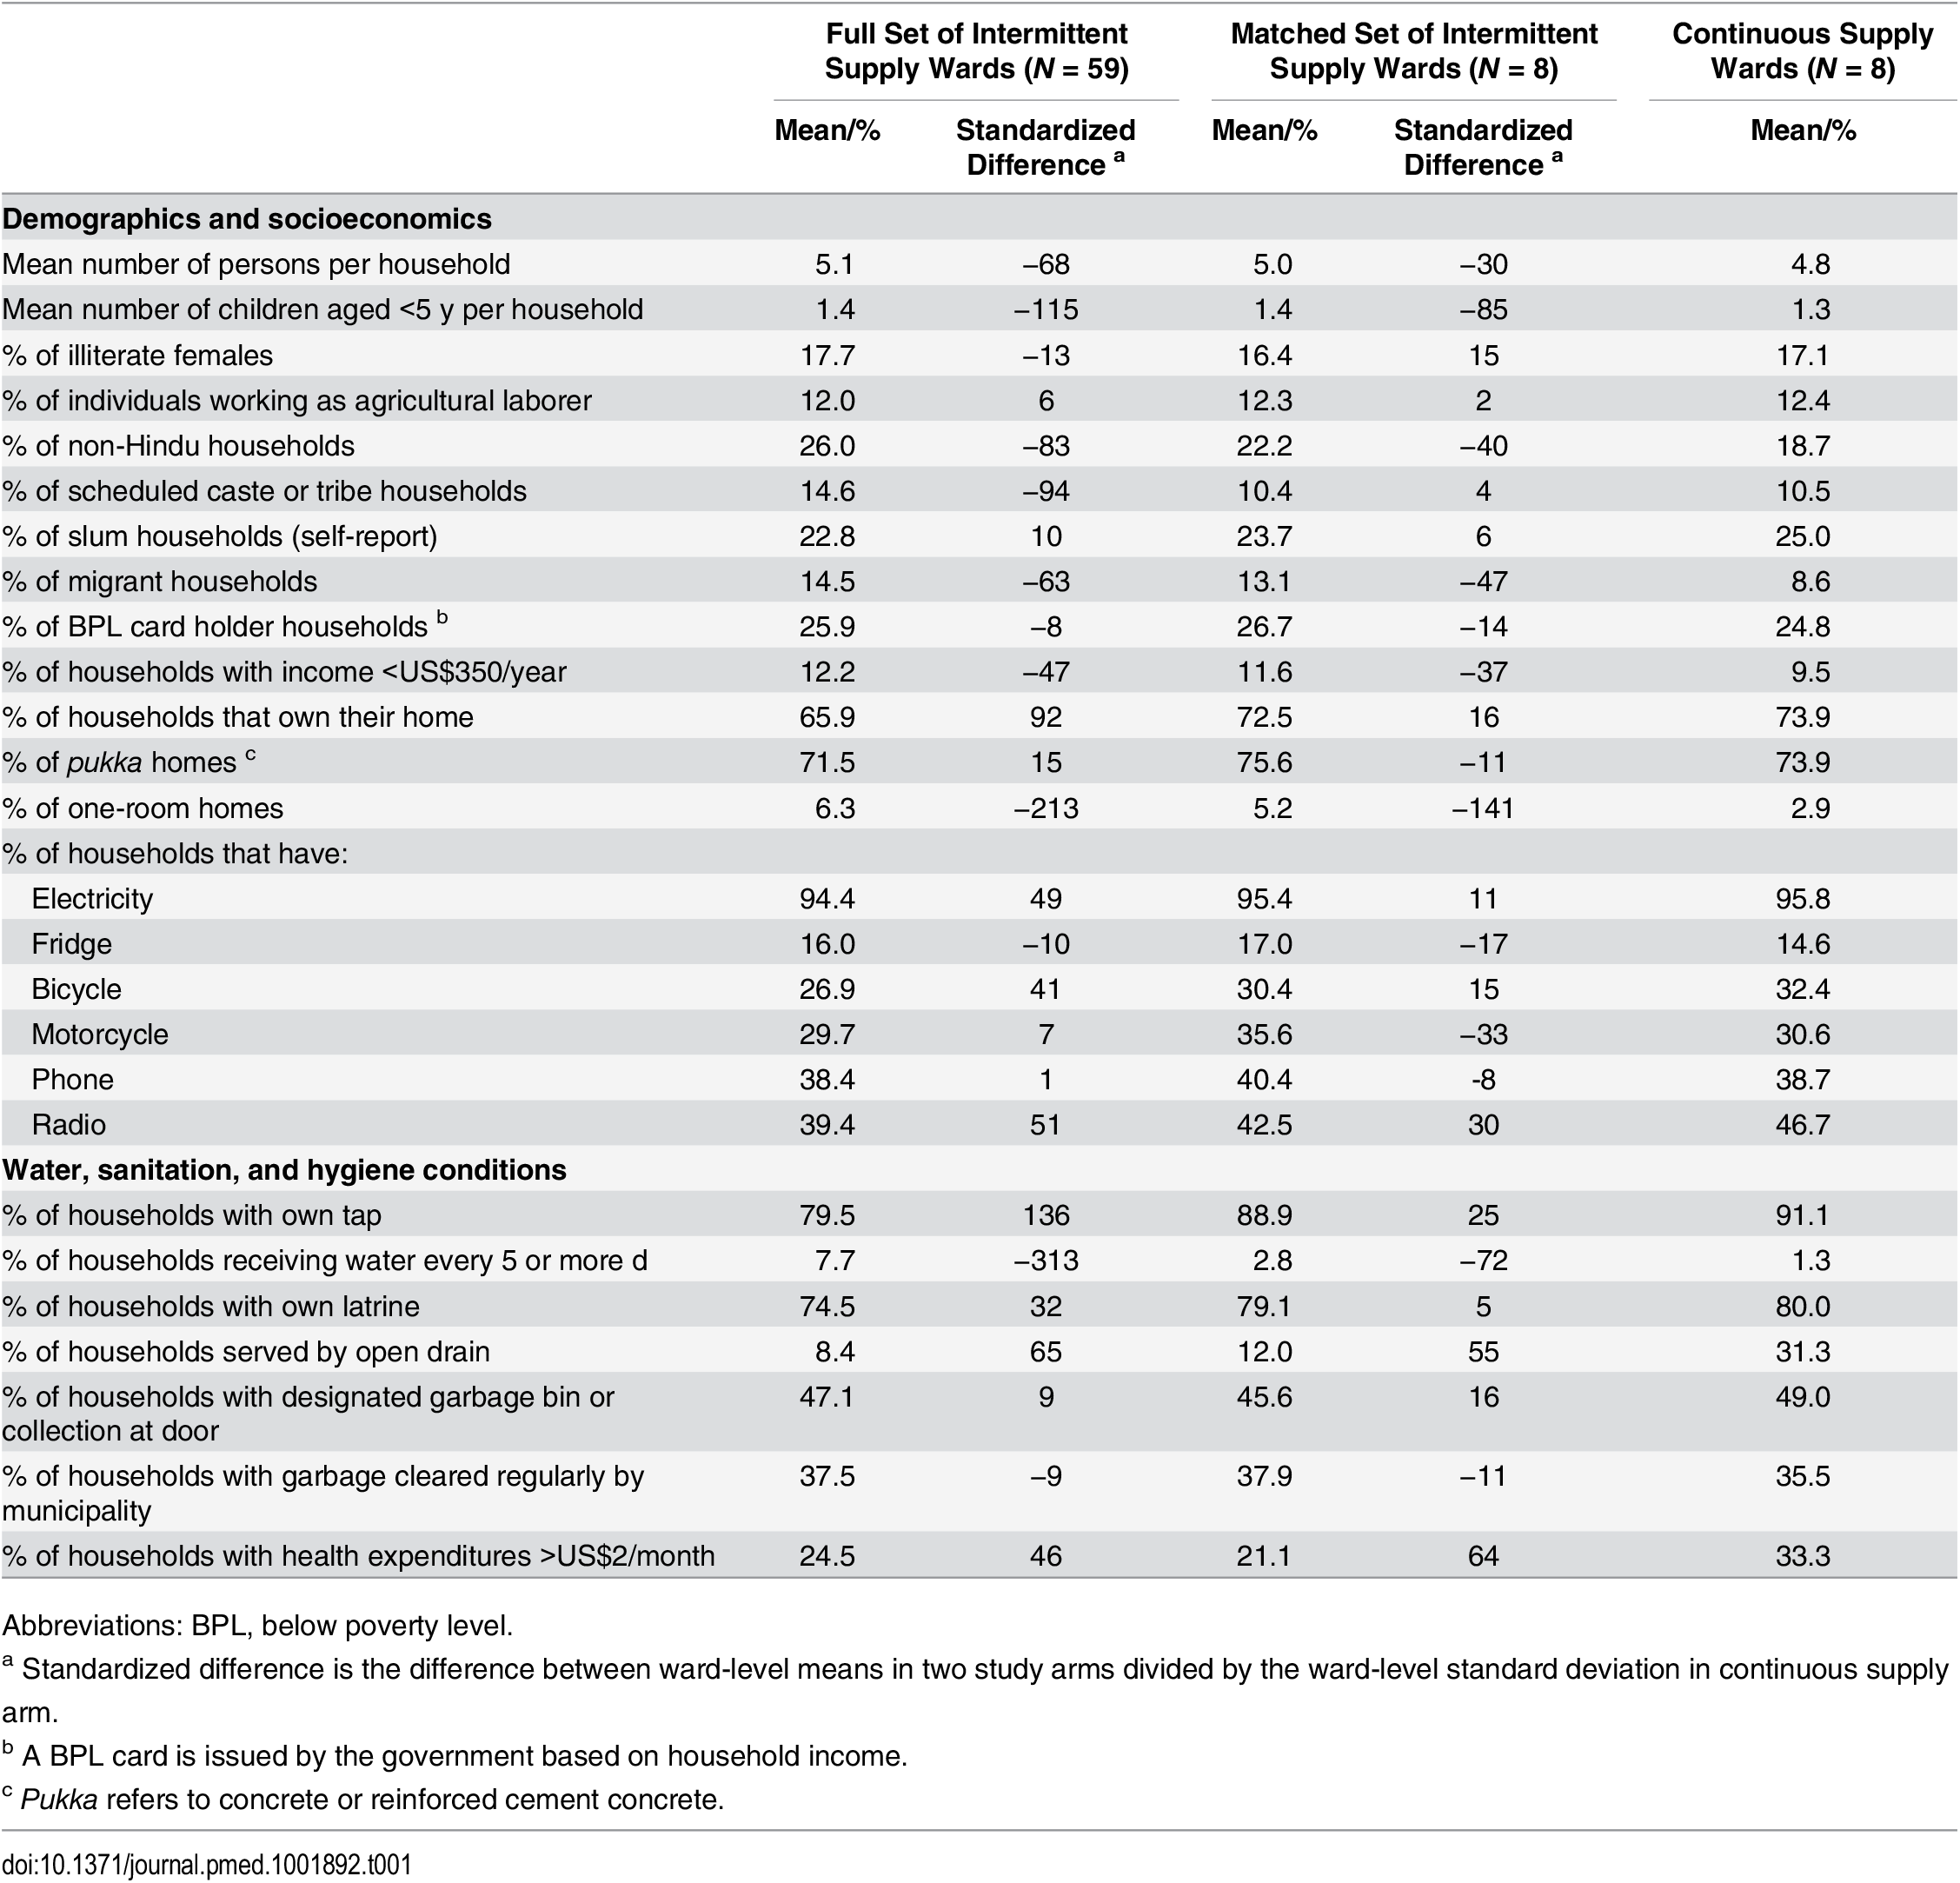 Comparison of ward characteristics by study group before and after matching.